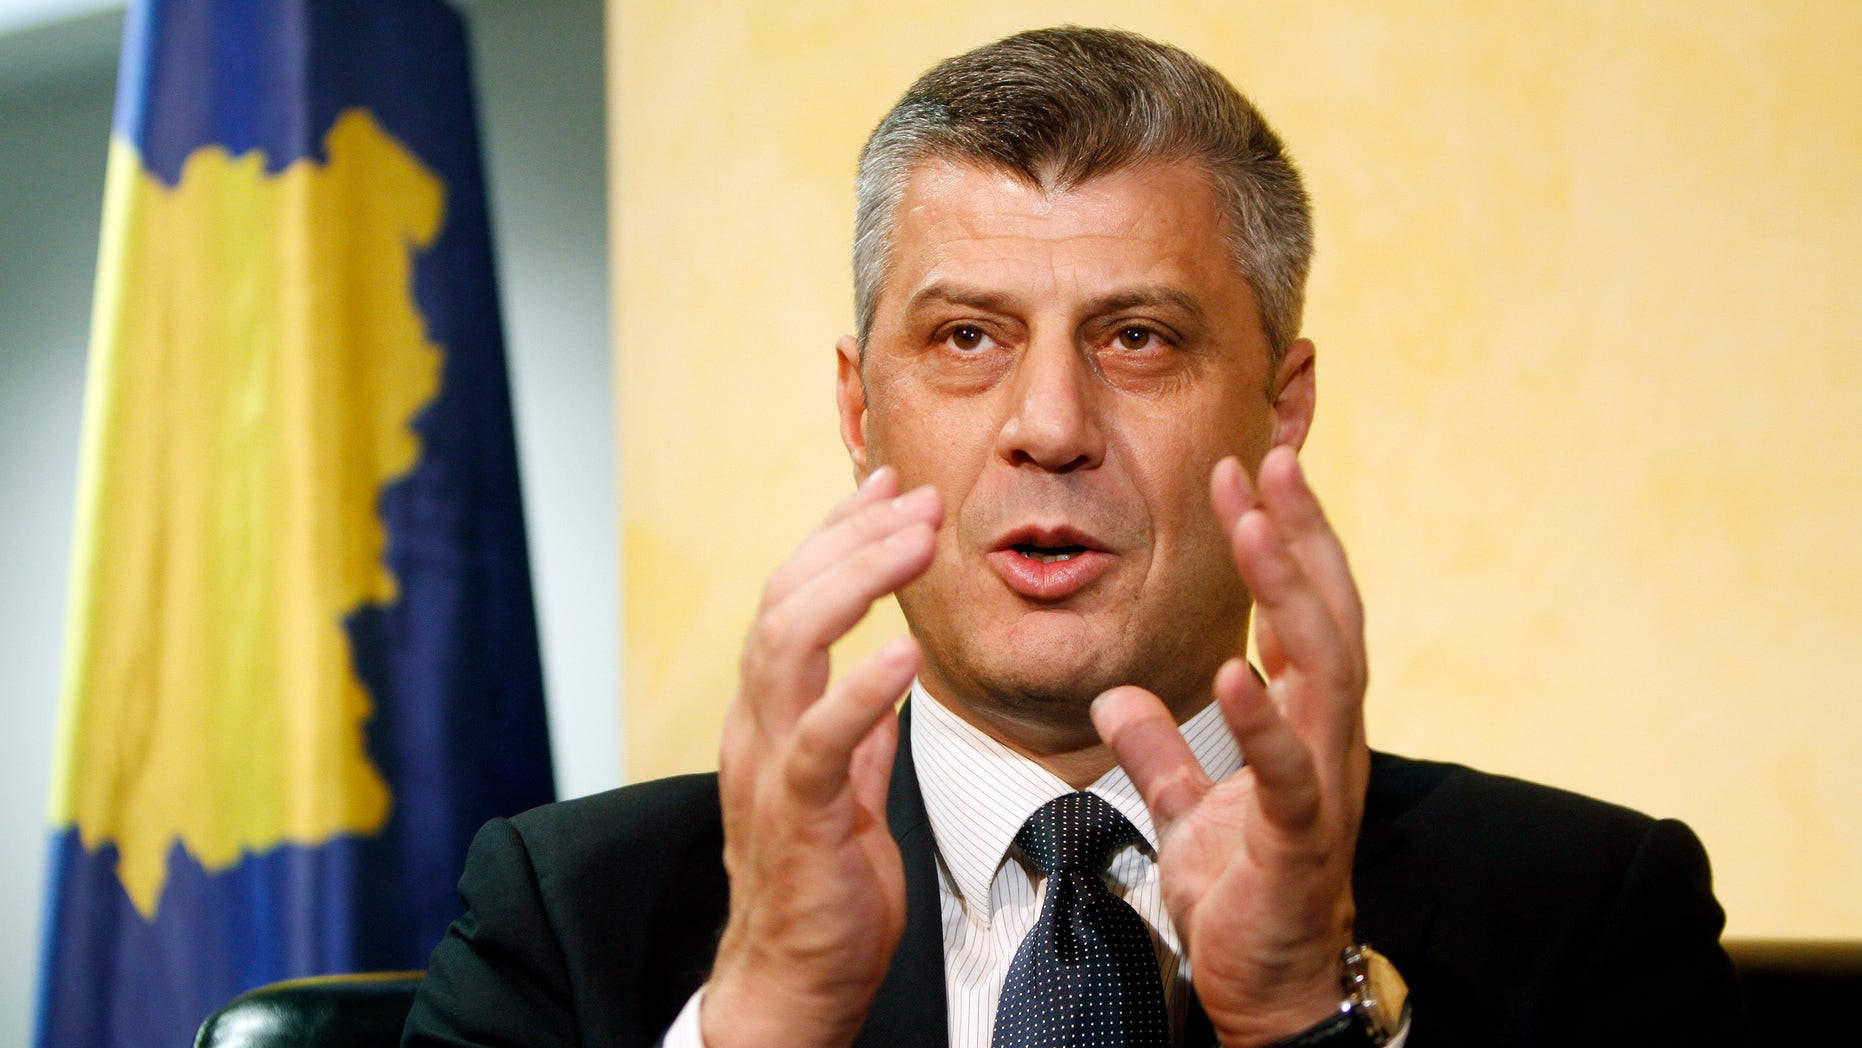 FILE: Prime Minister Hashim Thaci earlier said he wants an independent investigation to 'dispel the mist' surrounding allegations he led a gang that murdered detainees to sell their kidneys.